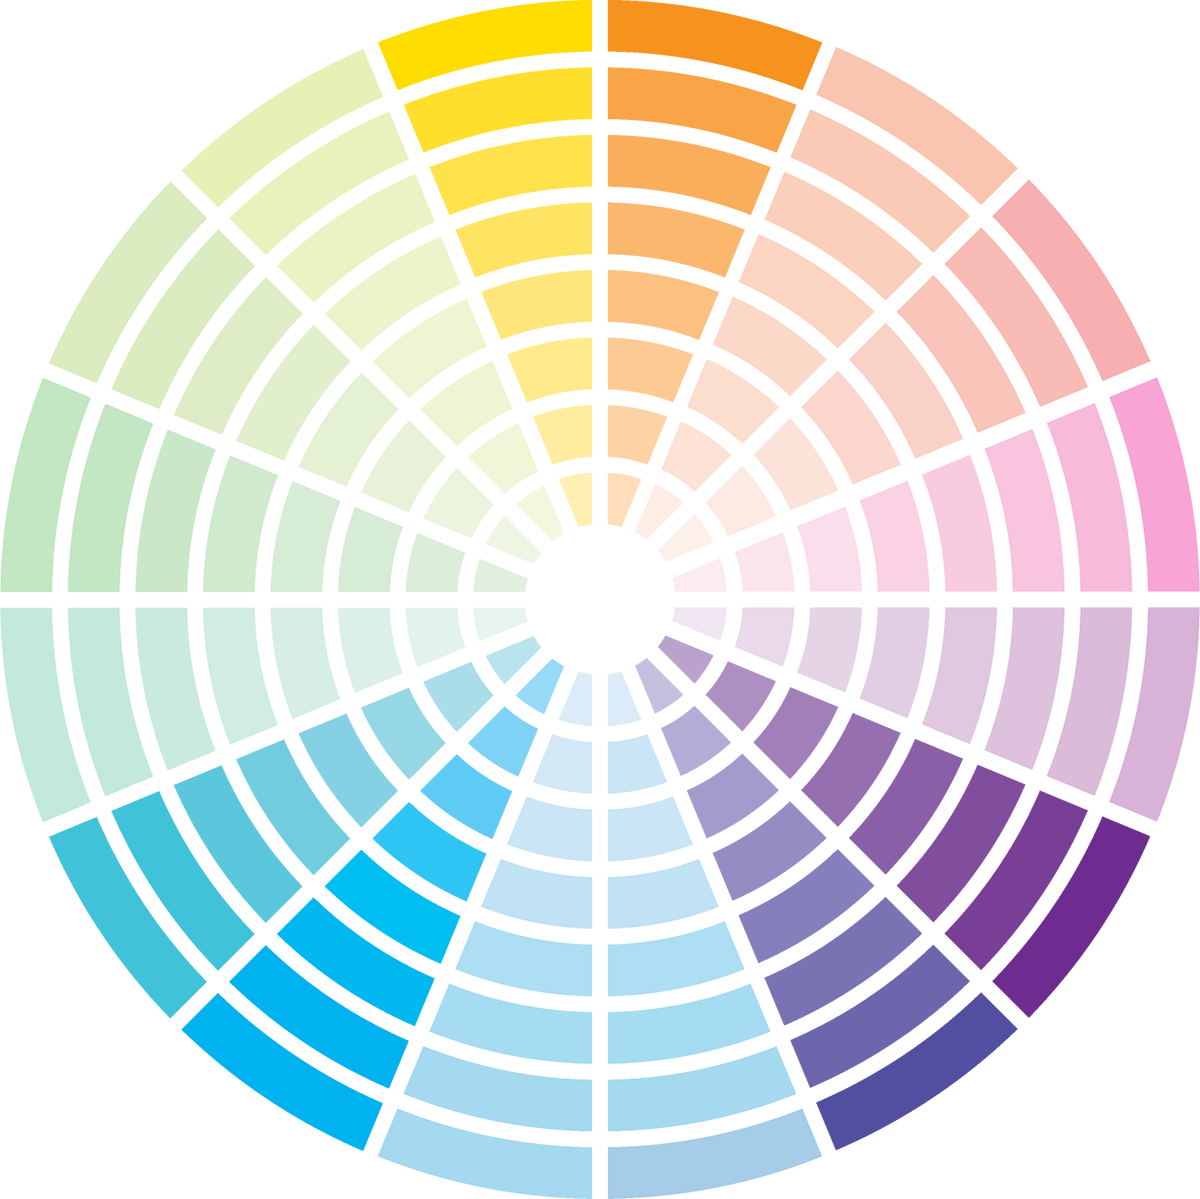 The Ultimate Guide To Color Theory For Photographersa Guide To Color